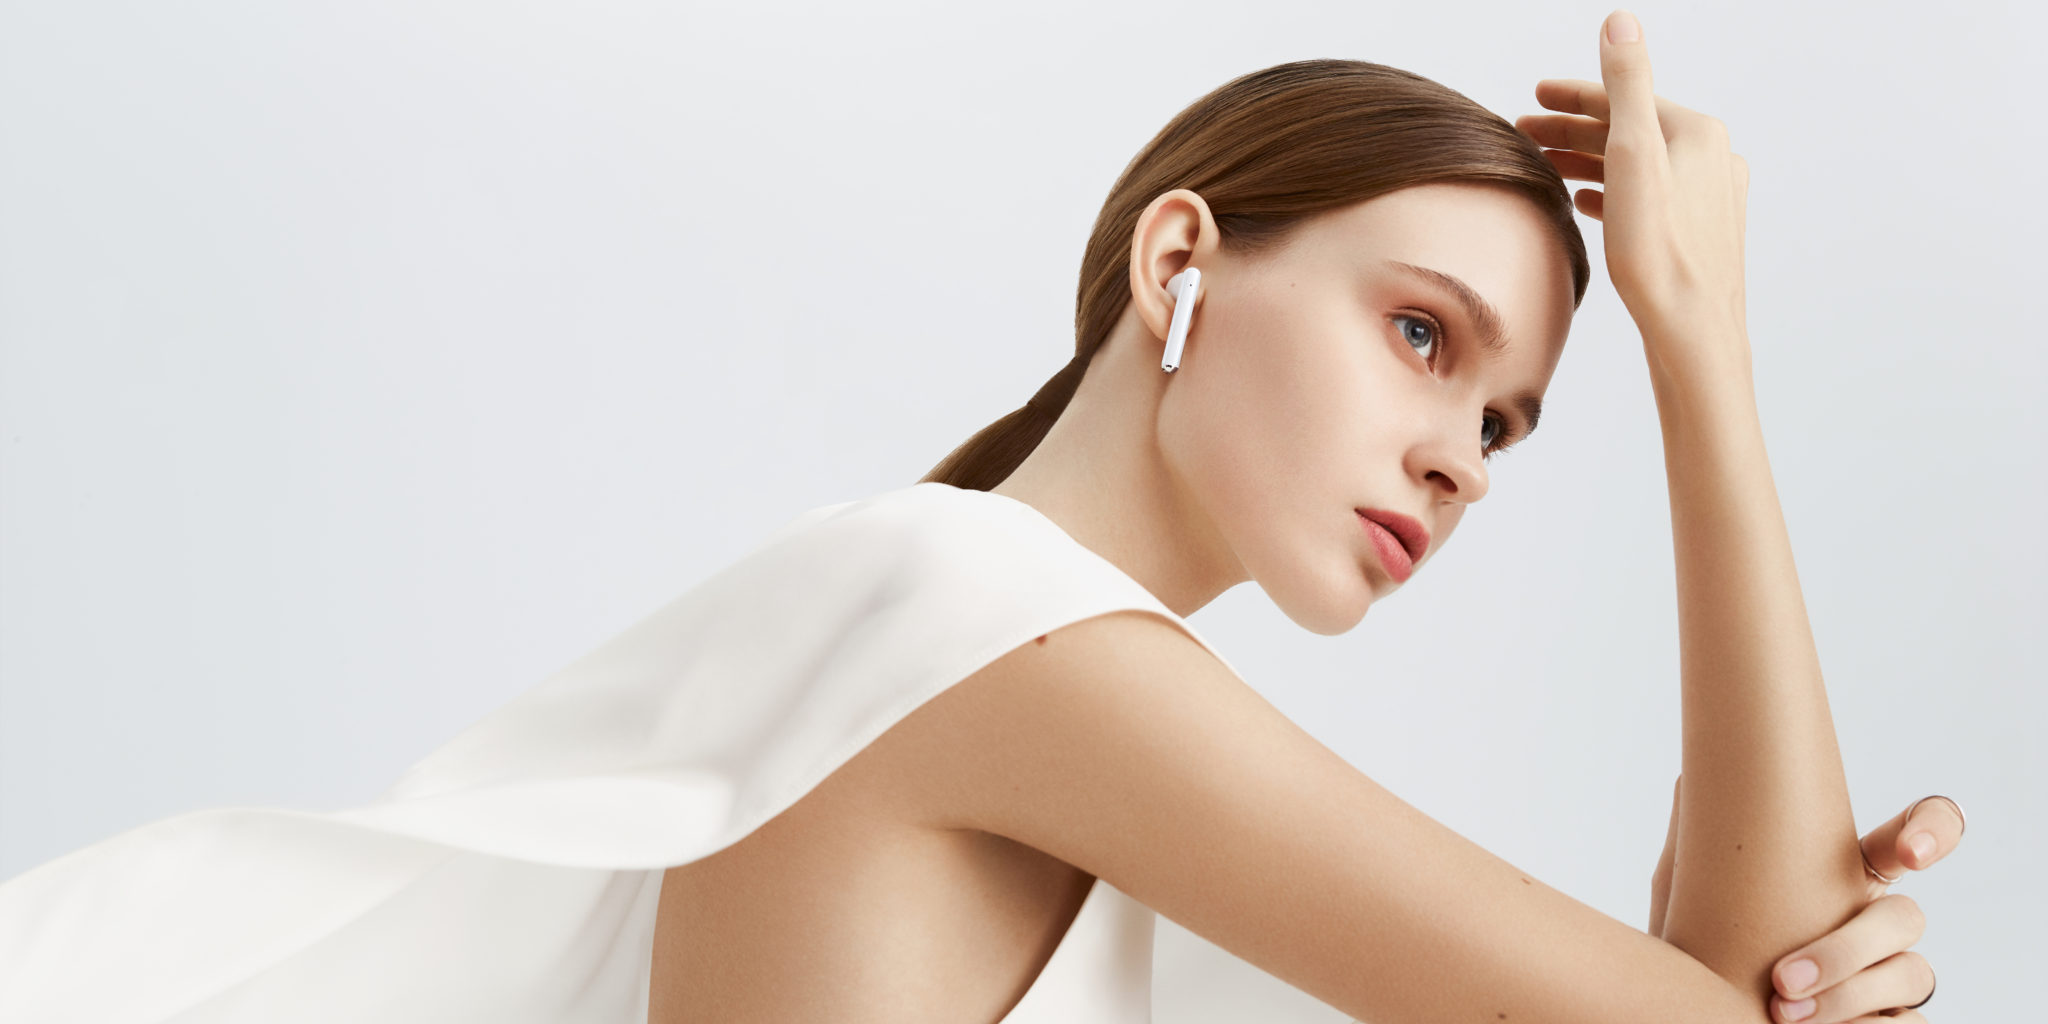 5 Awesome Sounding Reasons why the Huawei FreeBuds 3 wireless earphones should be on your holiday shopping wish list right now!